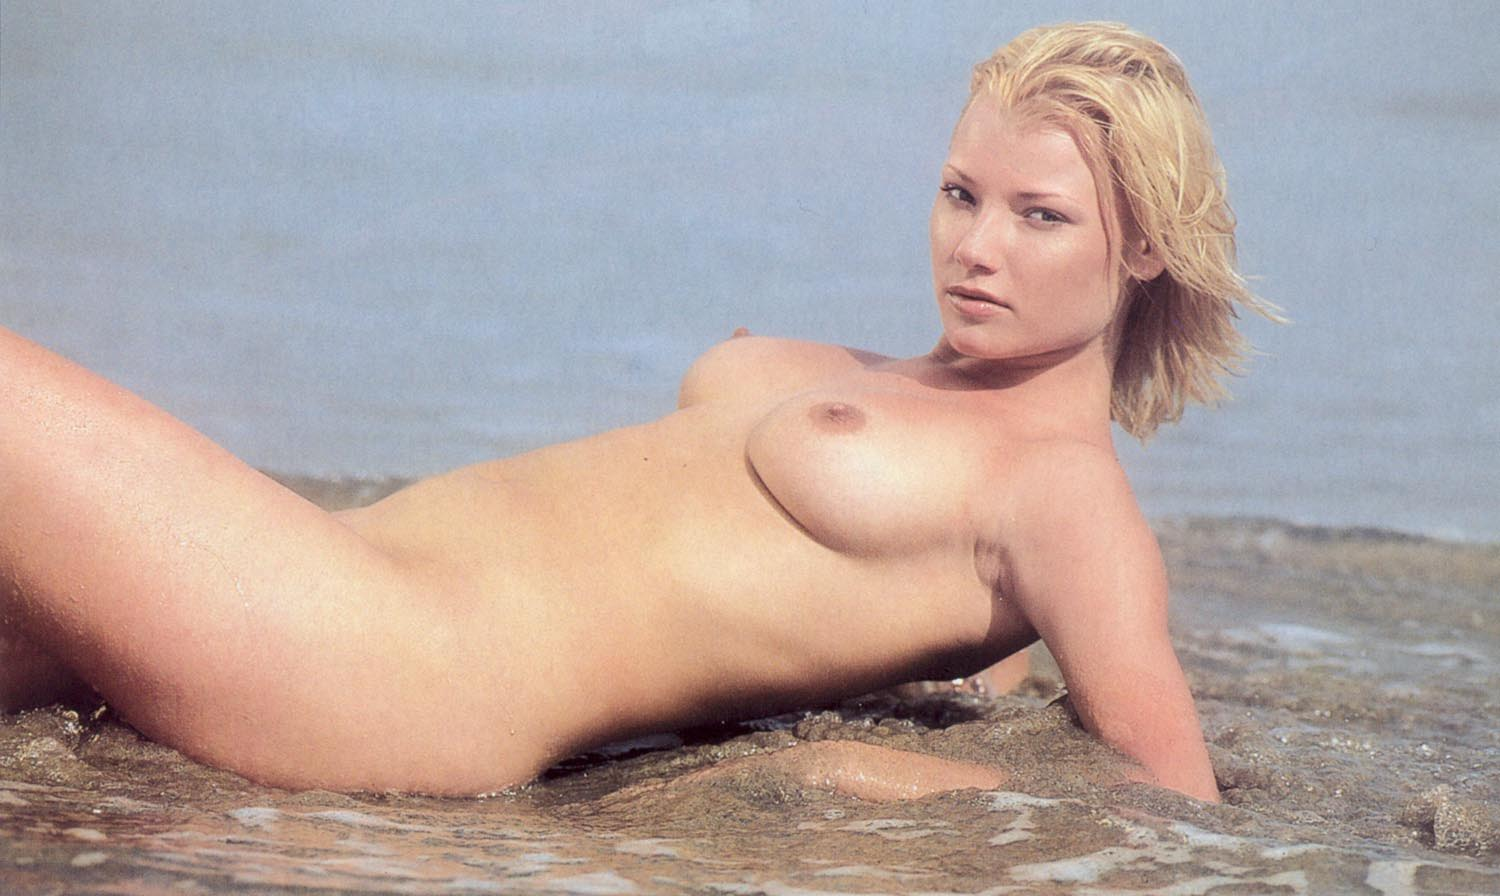 Waterworld Nude Scene Mobile Optimised Photo For Android Iphone